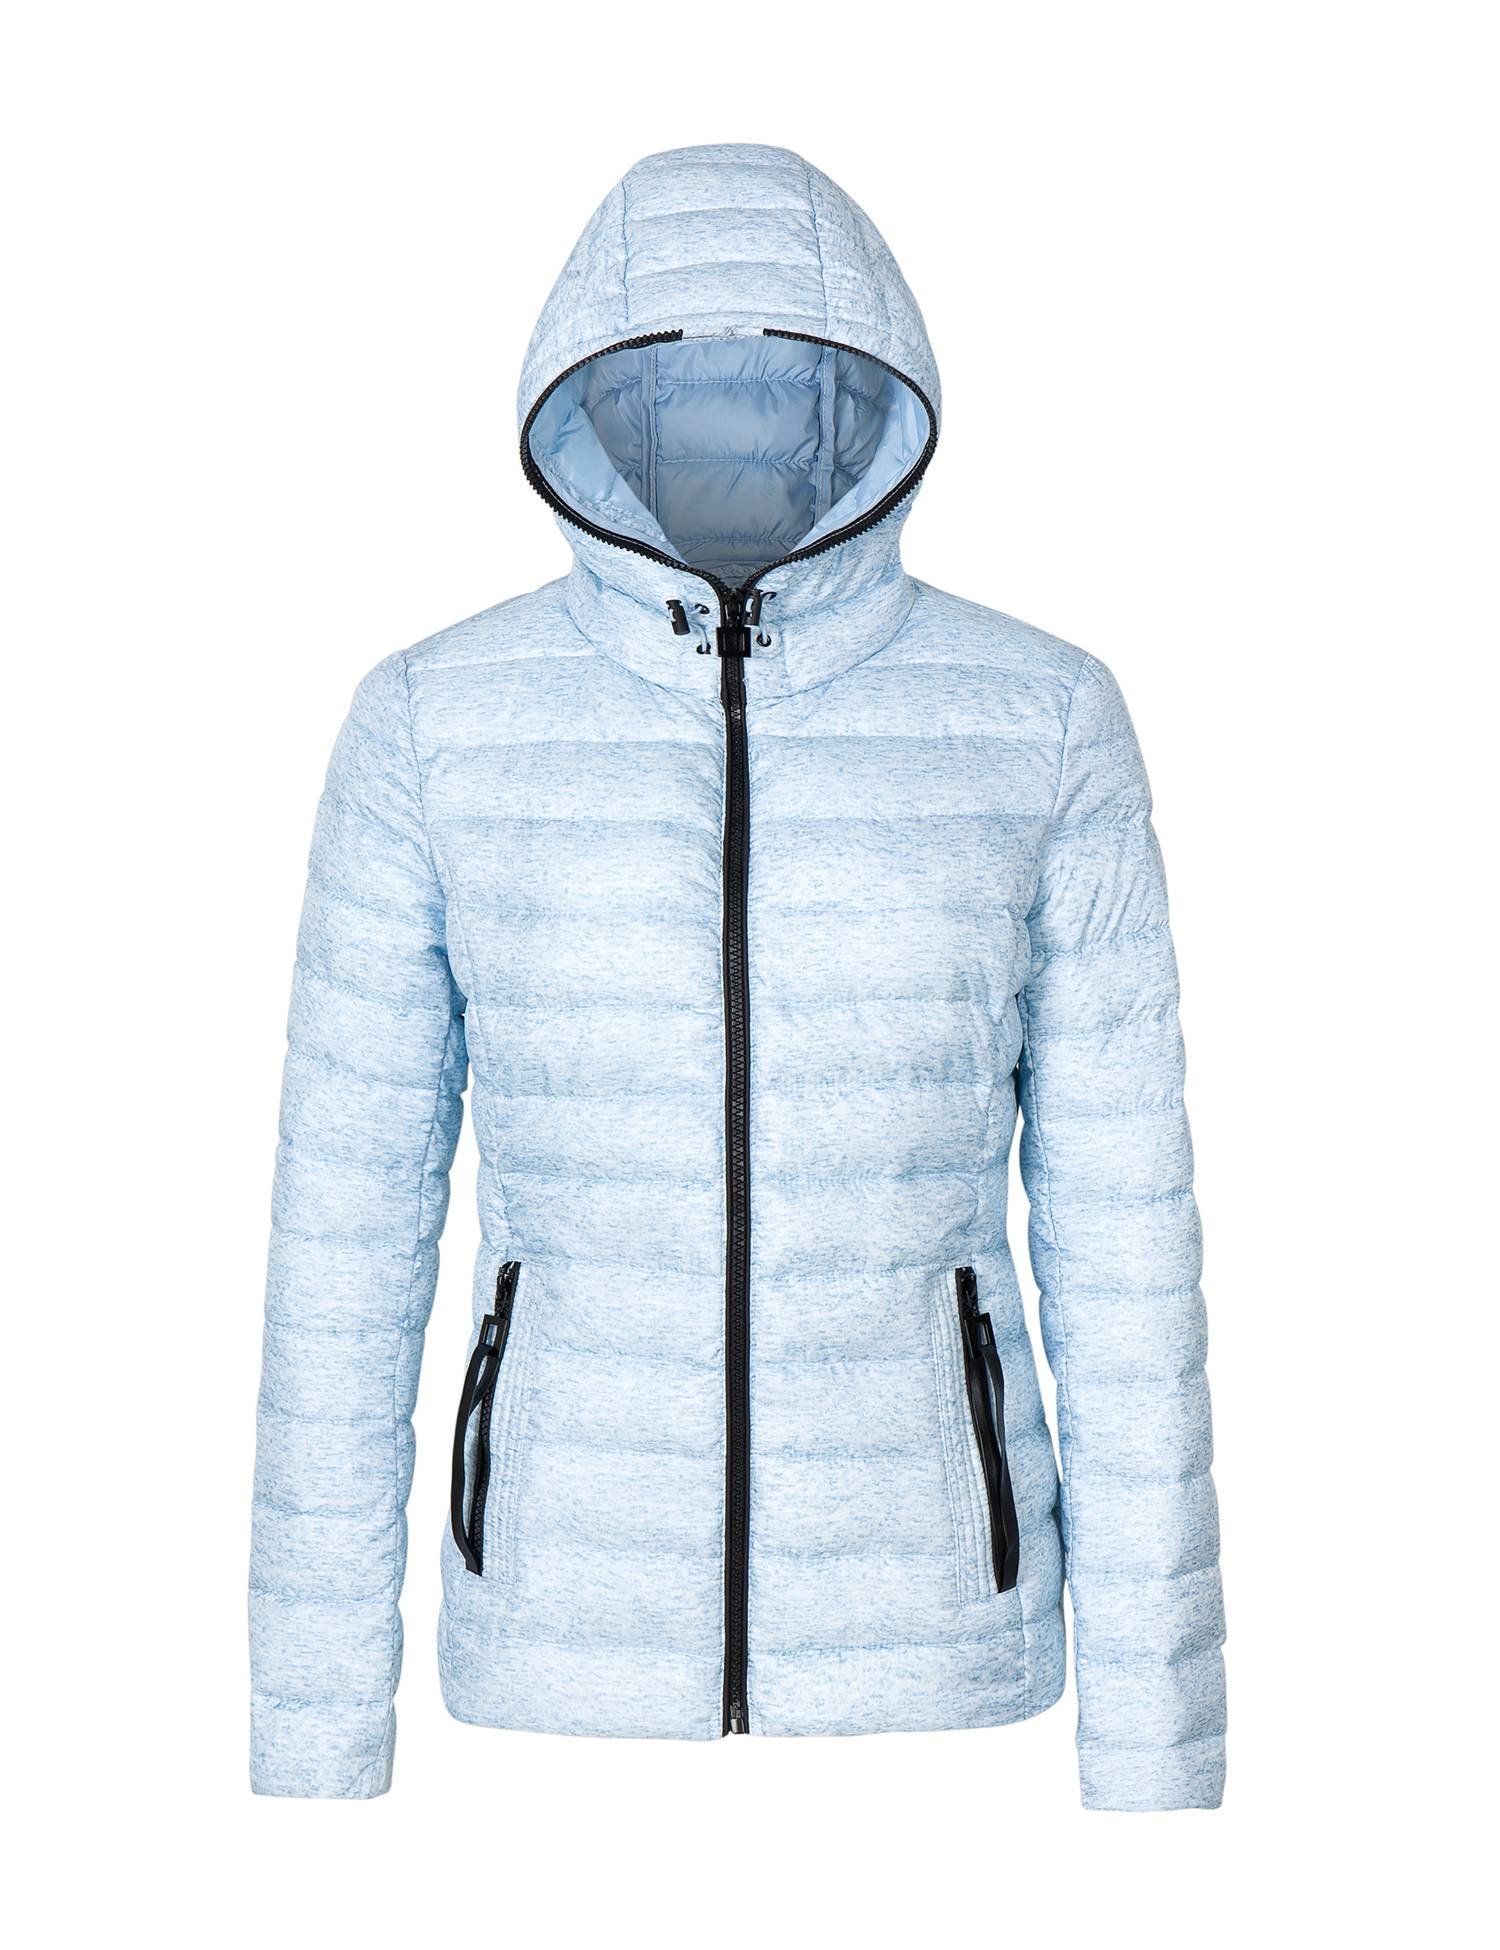 Bellivera Women's Quilted Lightweight Padding Hooded Jacket, Puffer Coat Cotton Filling Water Resistant for Fall and Winter by Bellivera